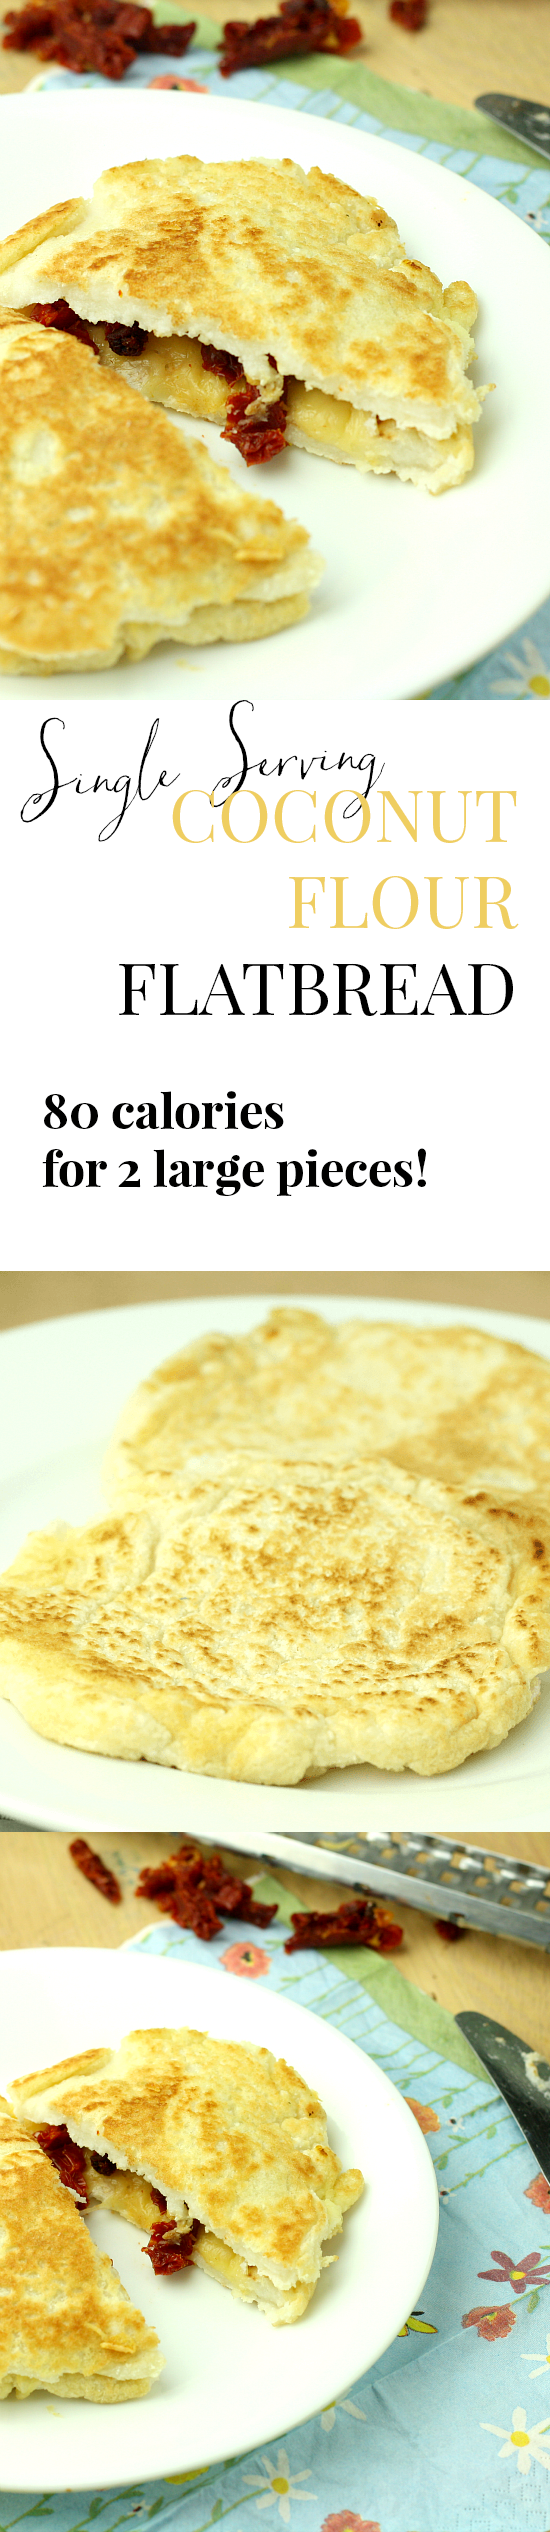 Flatbread Pinterest